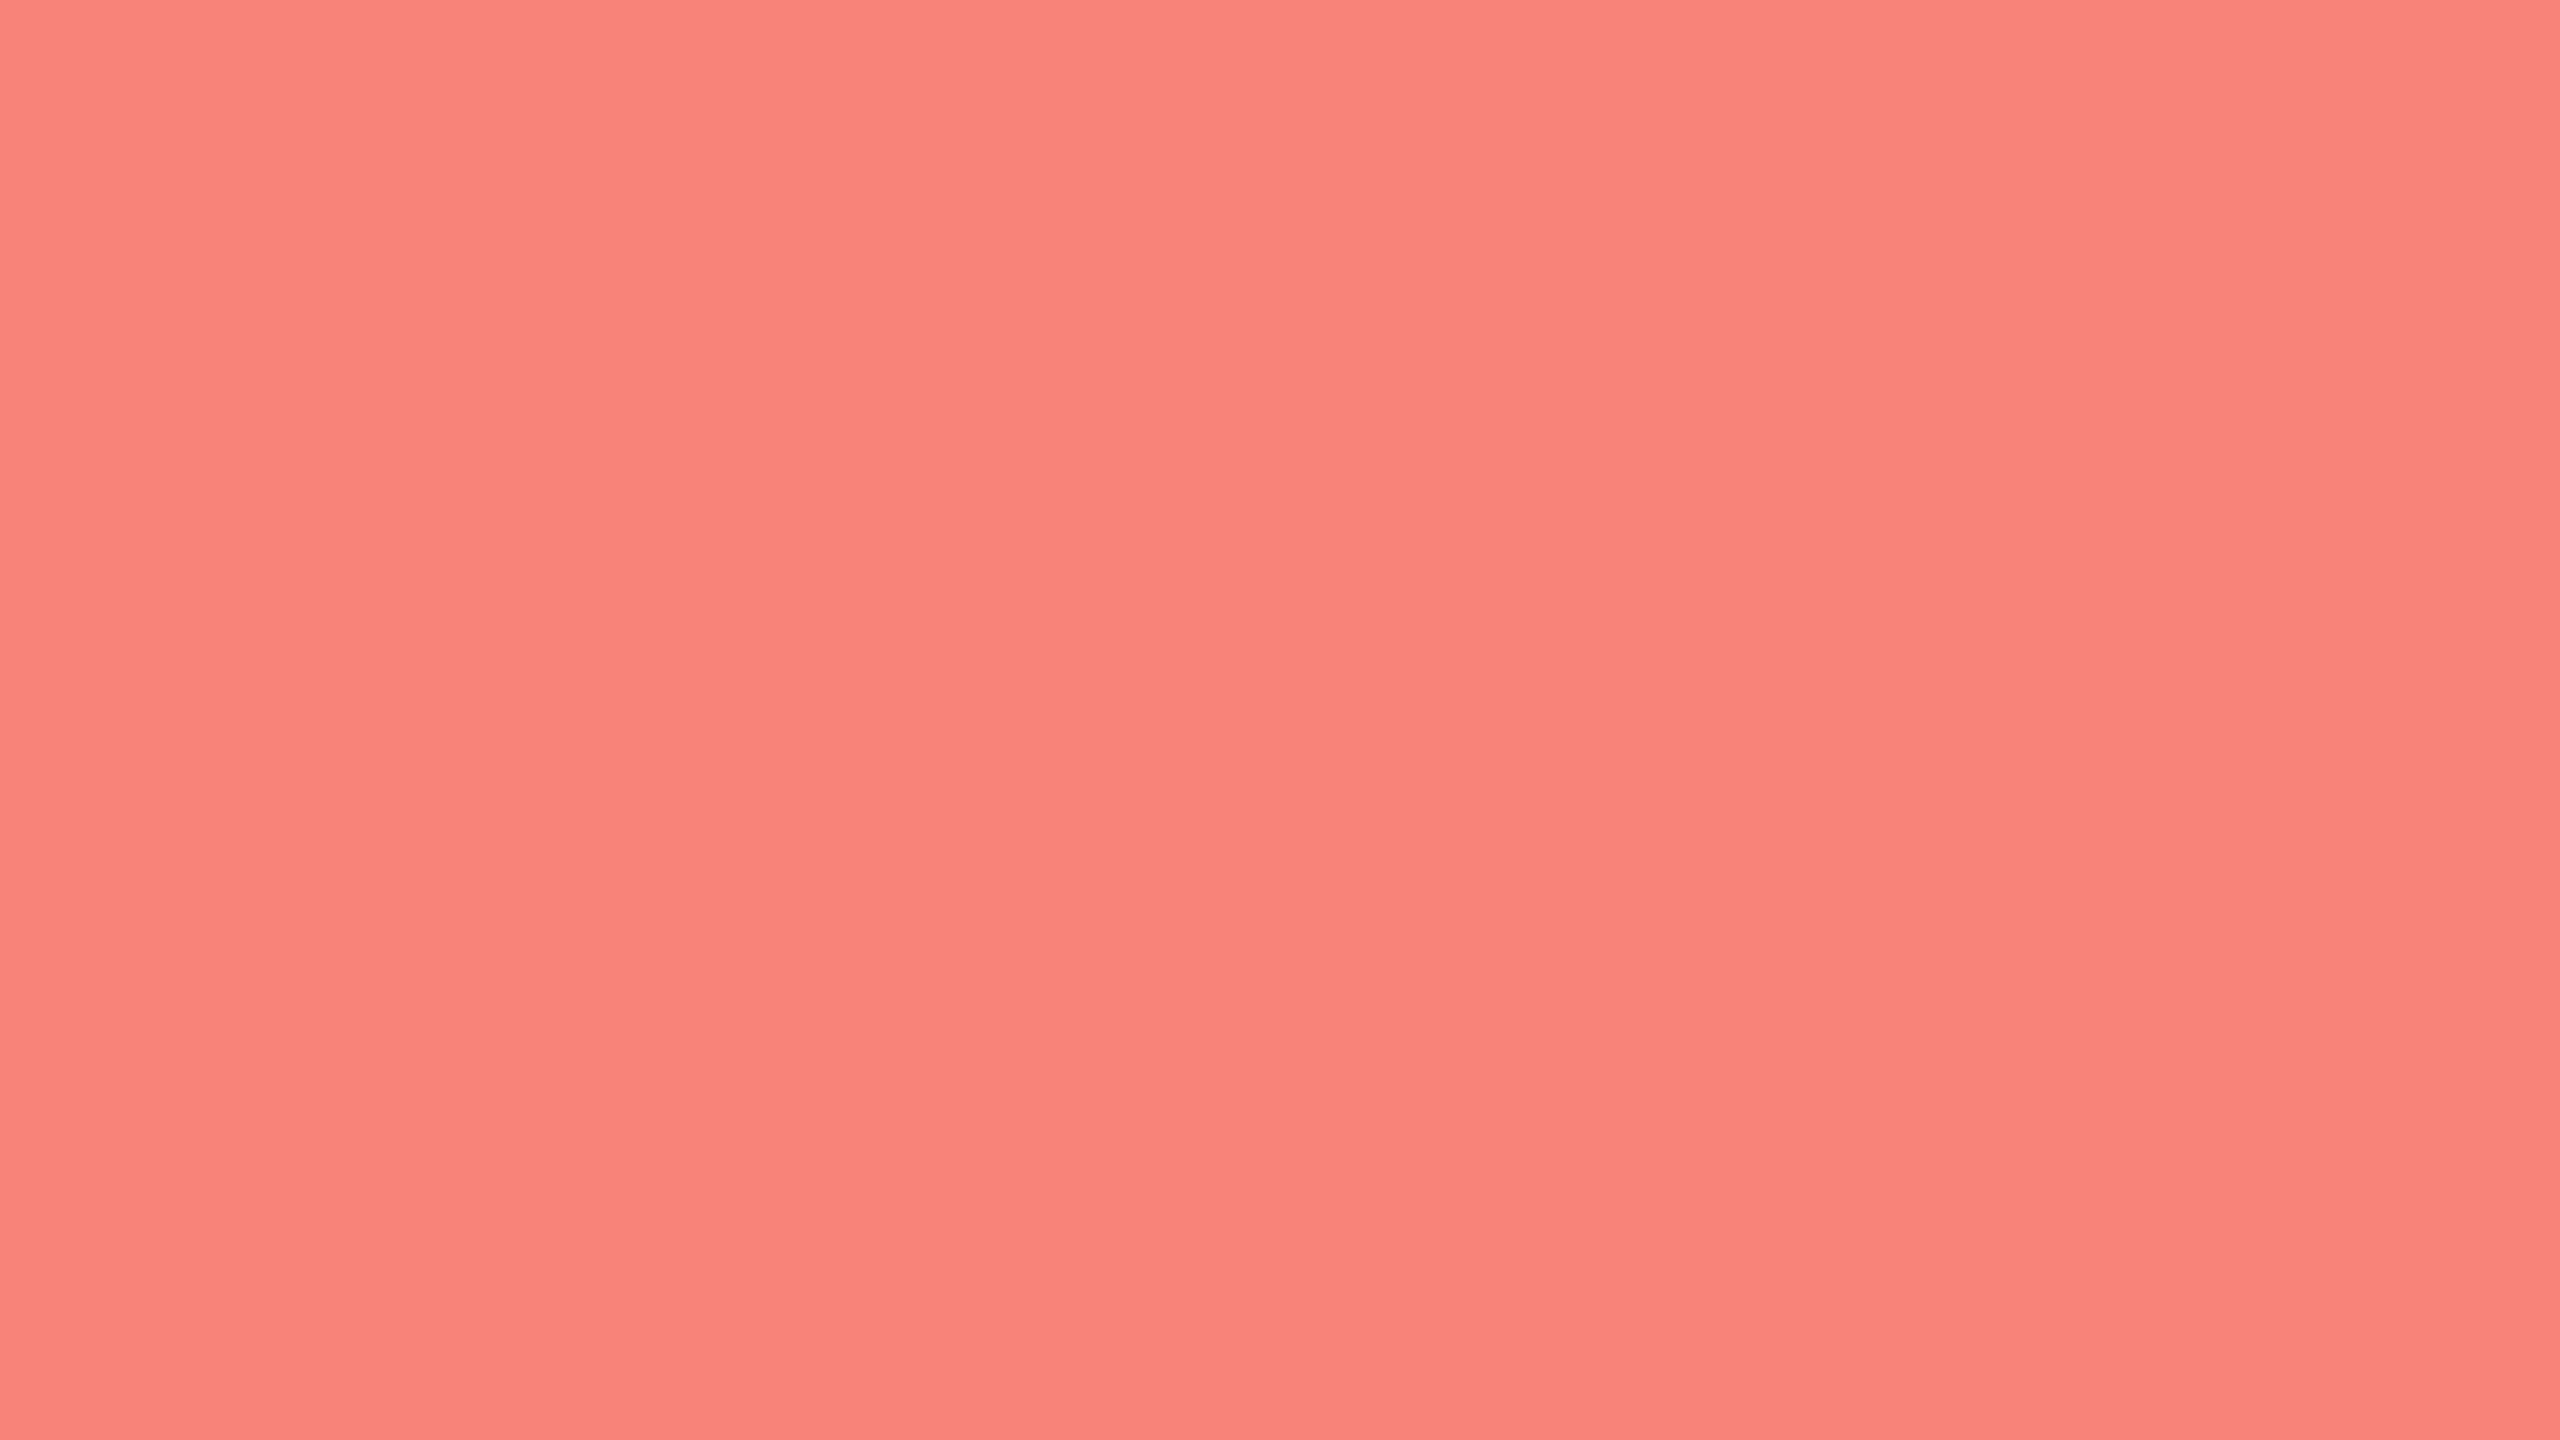 2560x1440 Congo Pink Solid Color Background